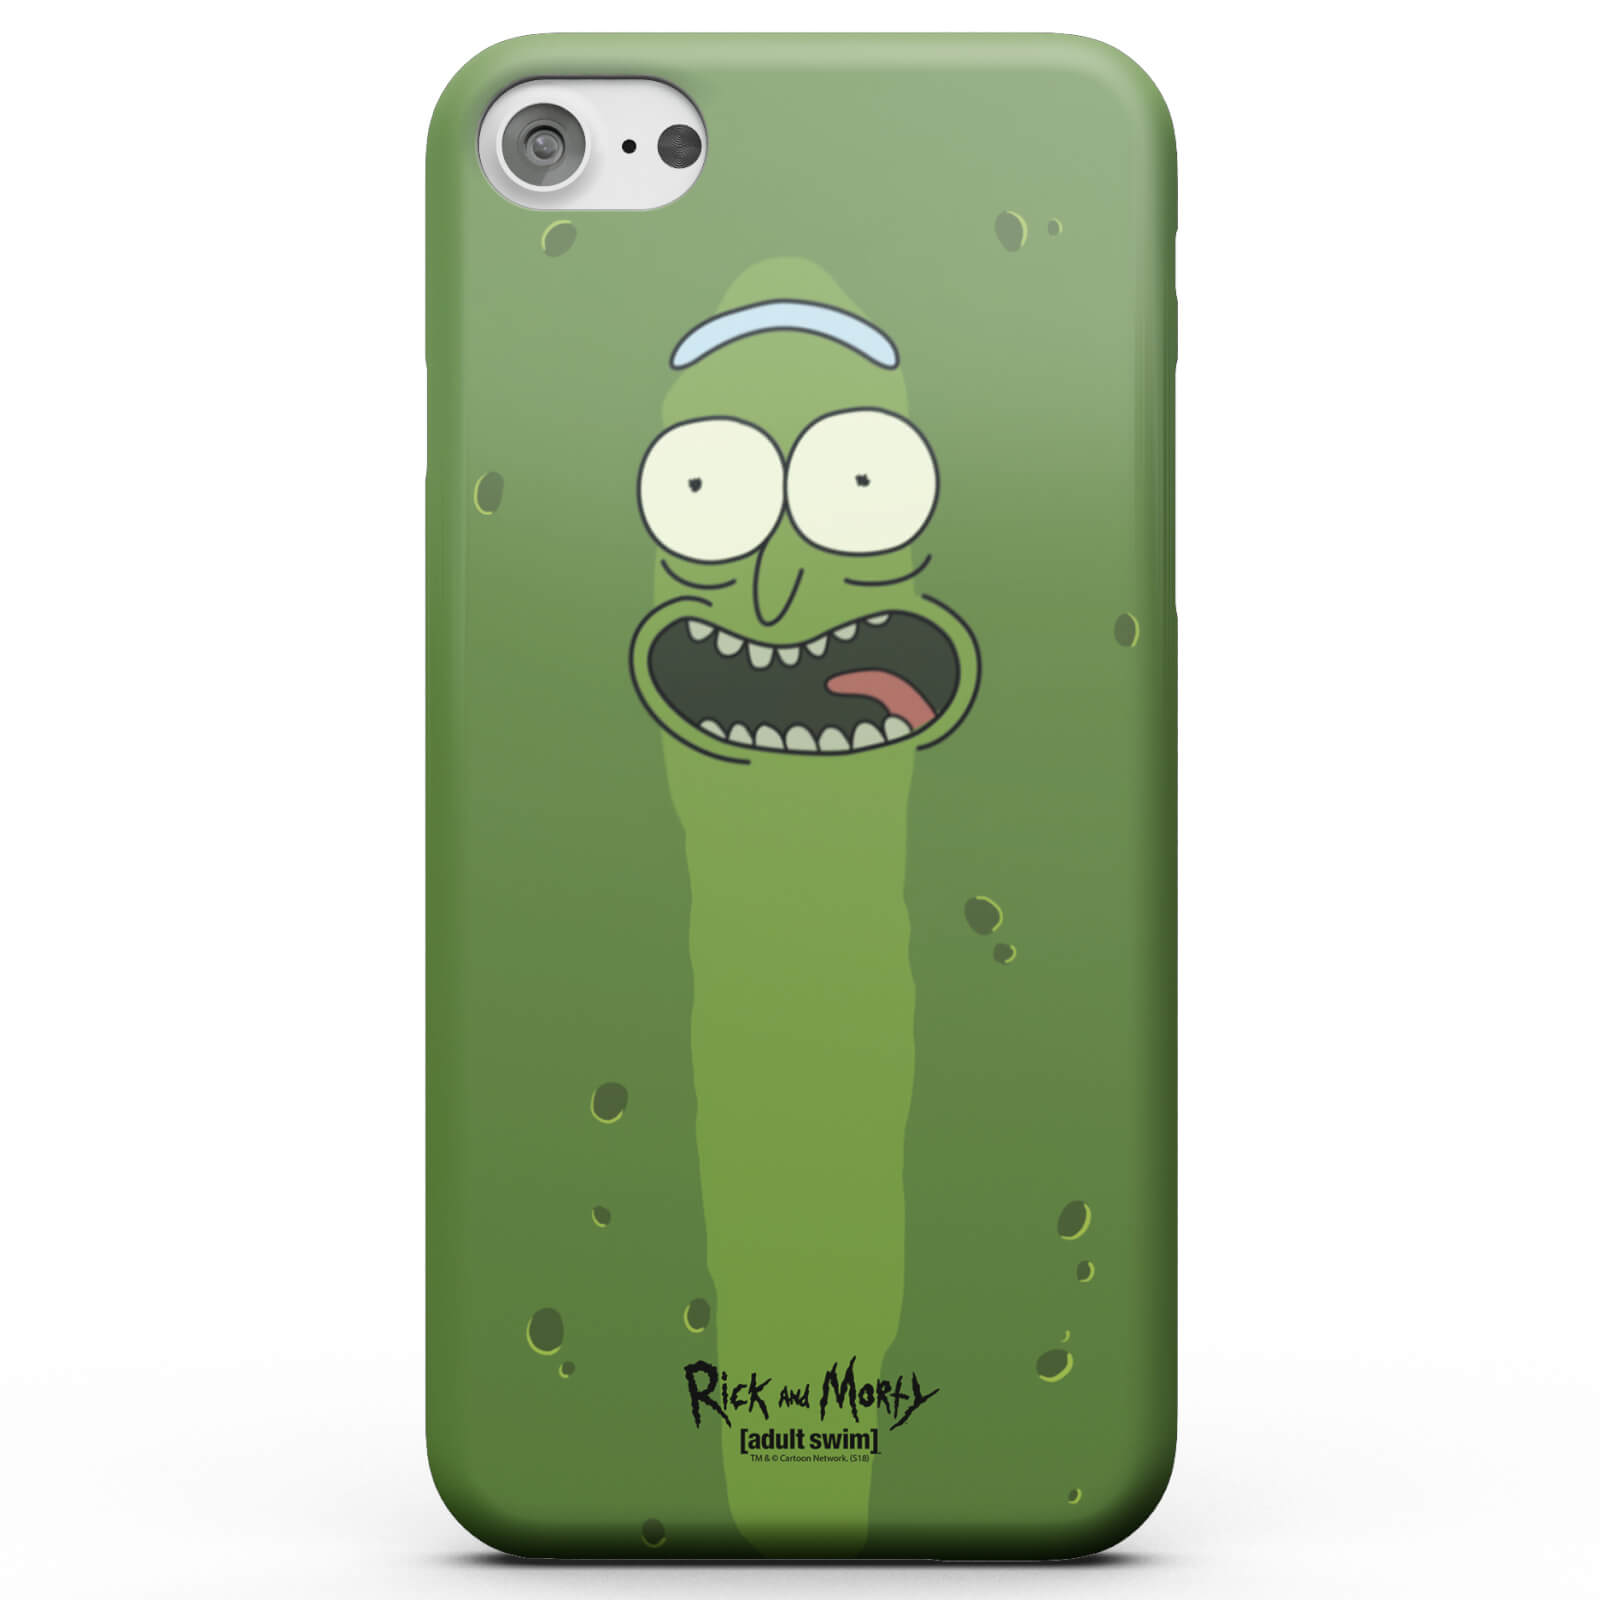 Funda Móvil Rick y Morty Pickle Rick para iPhone y Android - iPhone 6 Plus - Carcasa rígida - Mate de Rick and Morty